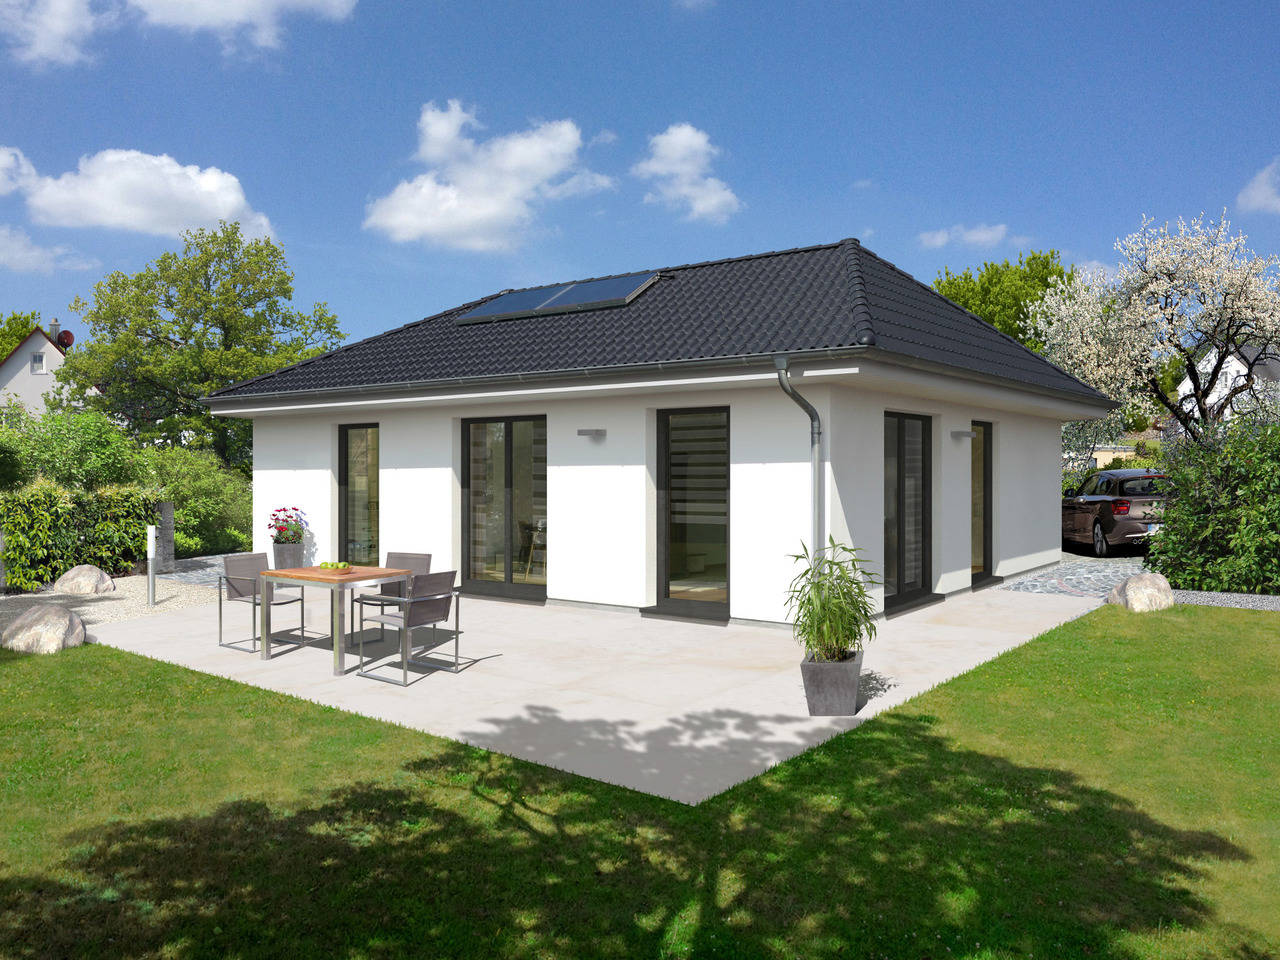 Bungalow 92 Elegance von Nickol Hausbau - Town & Country Partner